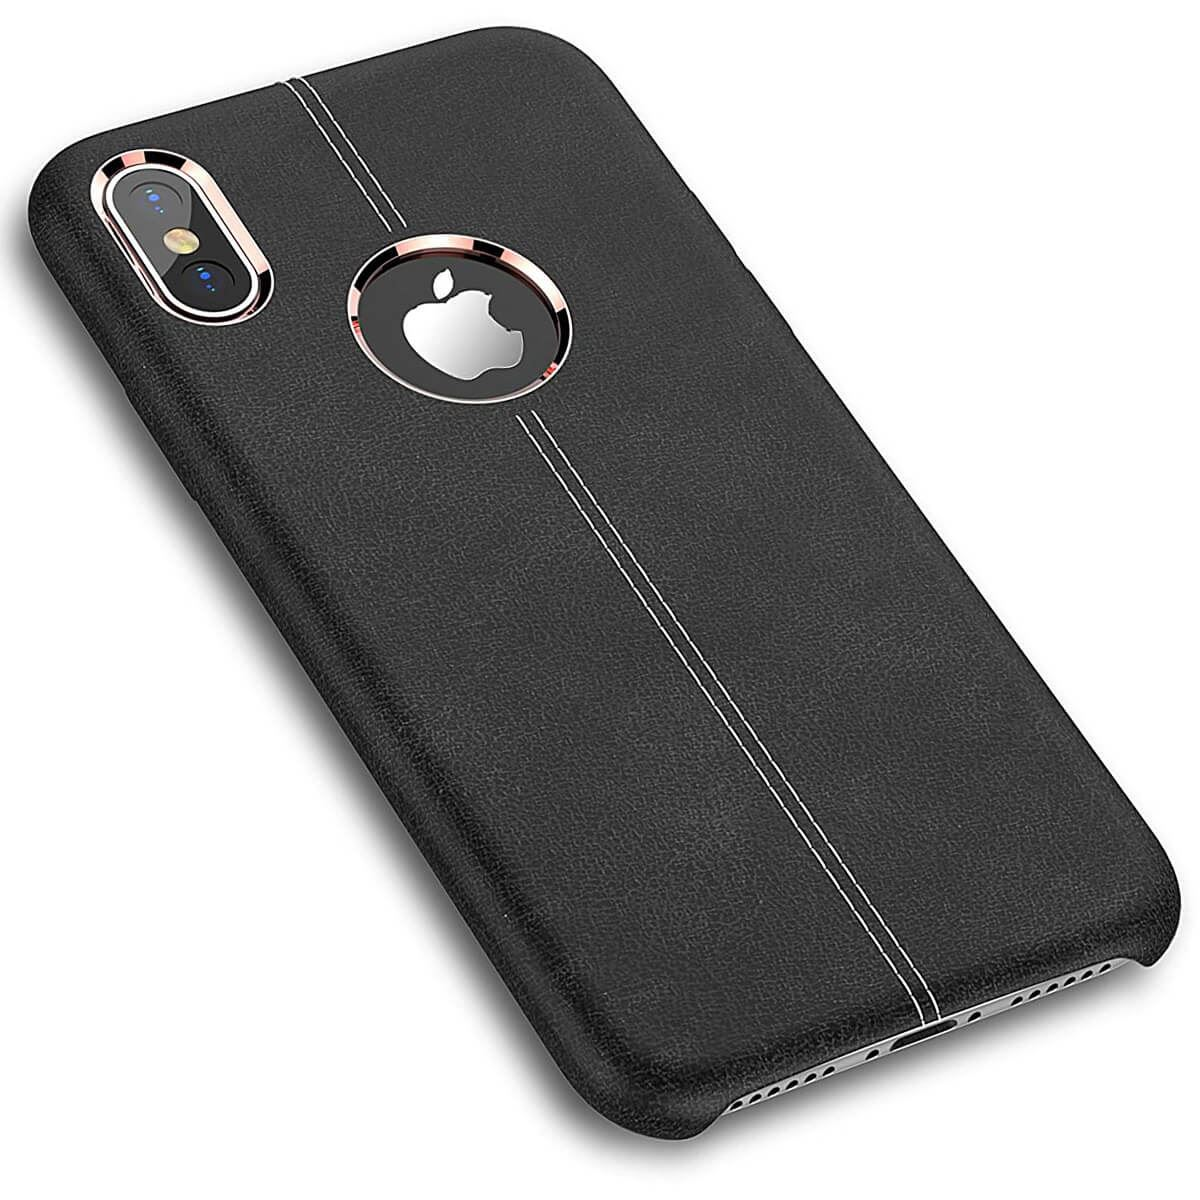 Rugged-Thin-Case-Skin-For-Apple-iPhone-10-X-8-7-Plus-6s-Genuine-Leather-Cover thumbnail 5